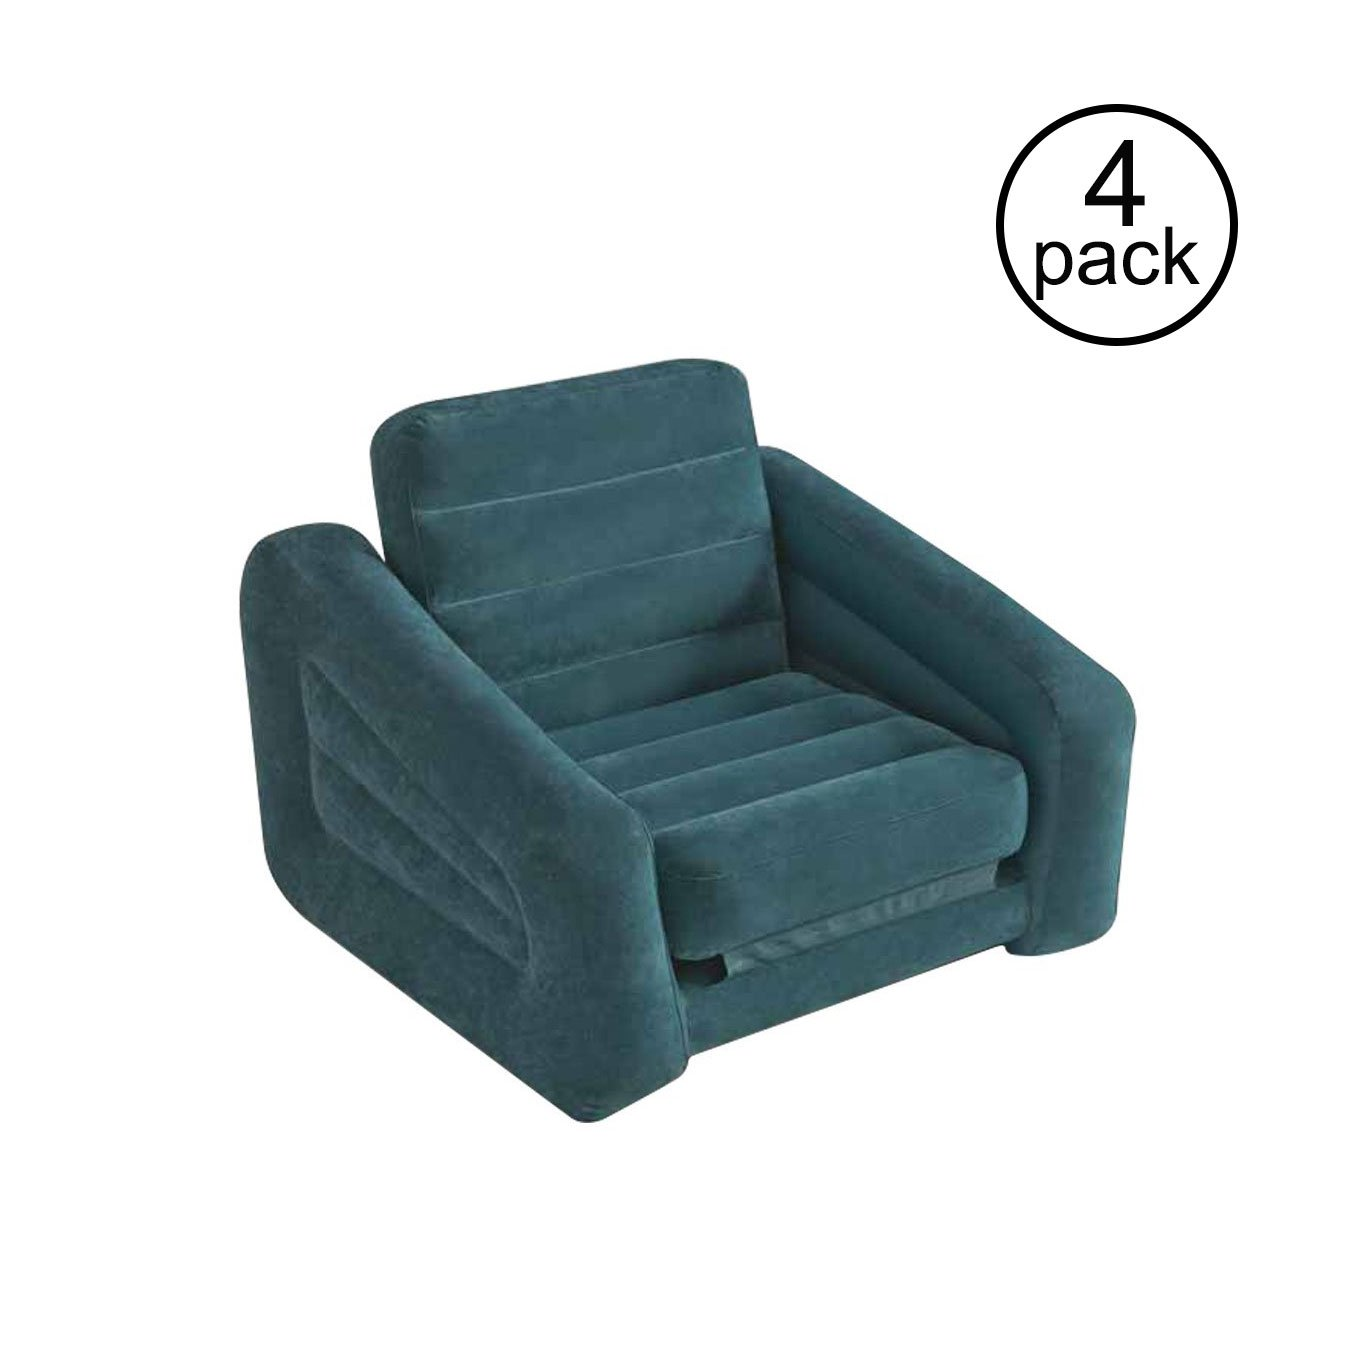 intex inflatable pull out chair twin bed wooden rocking seat and air mattress sleeper 4 pack walmart com